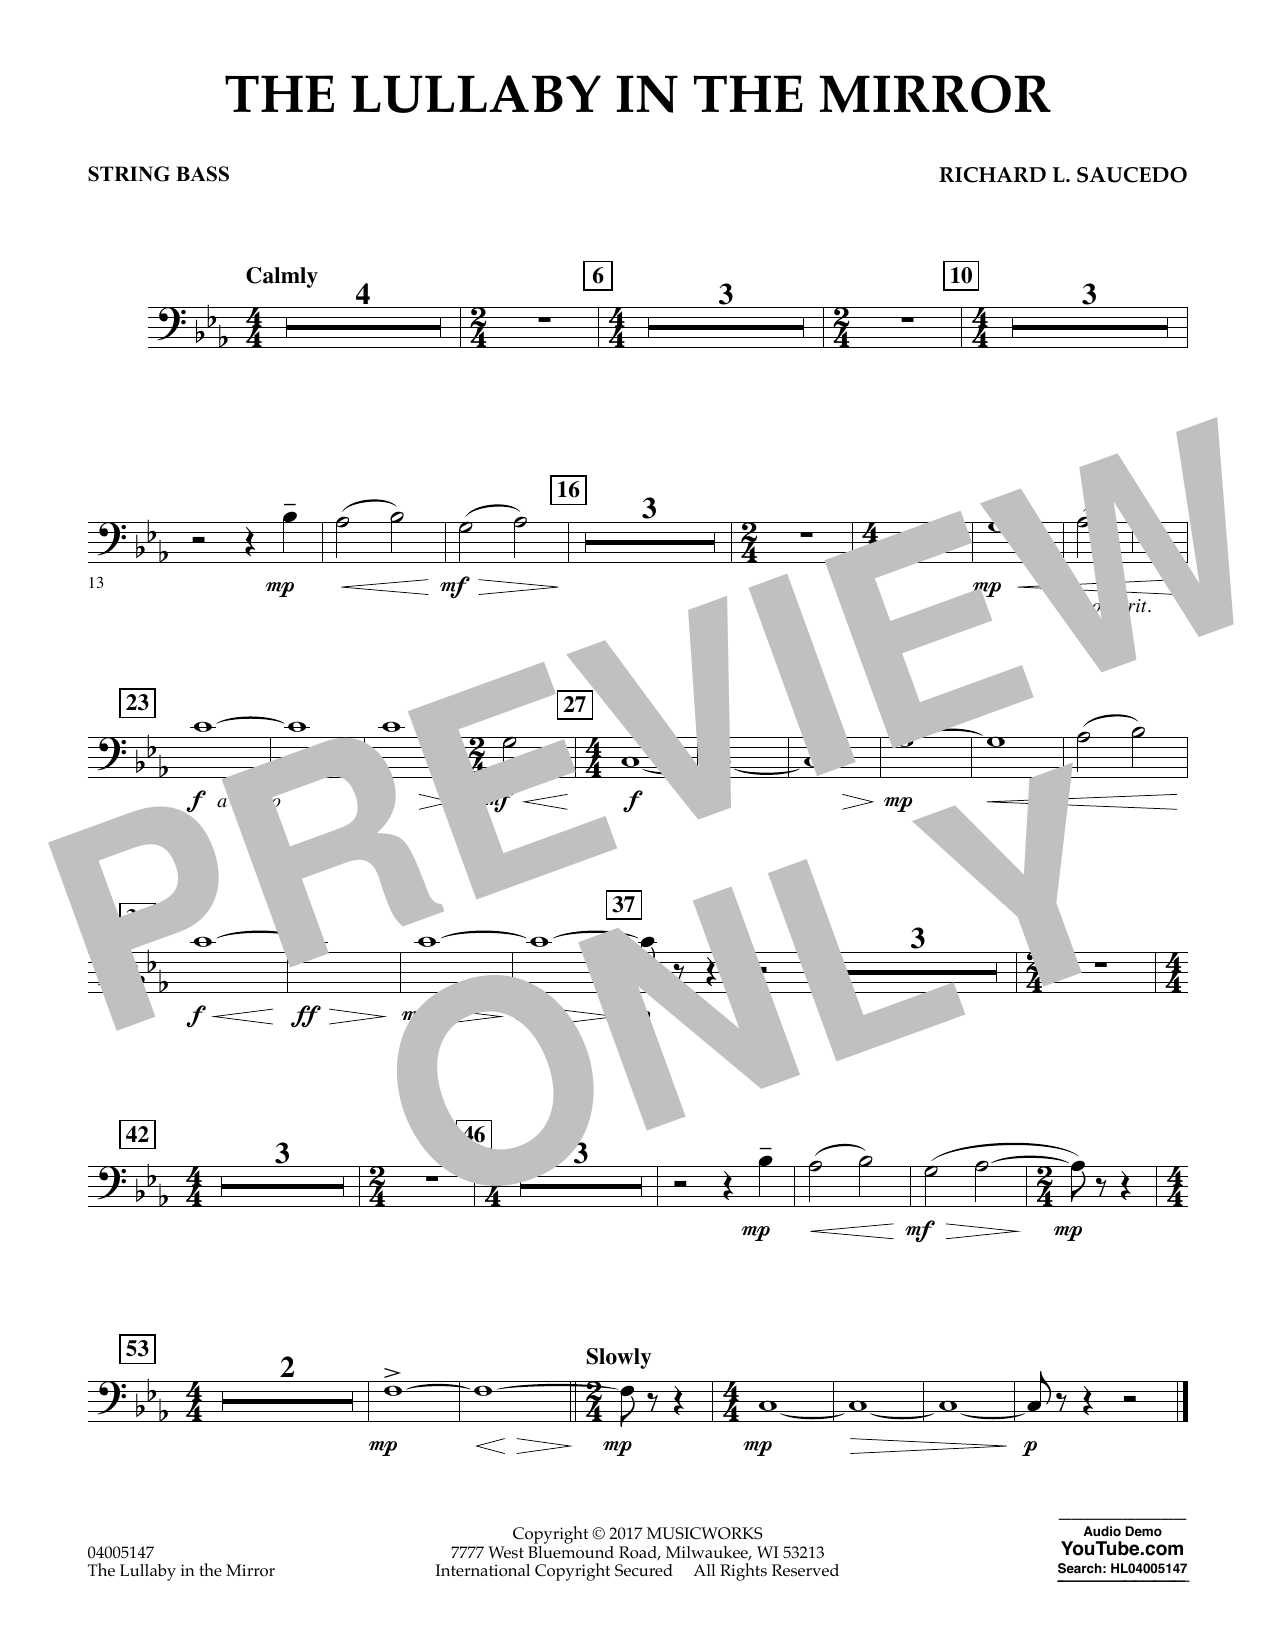 The Lullaby in the Mirror - String Bass Sheet Music